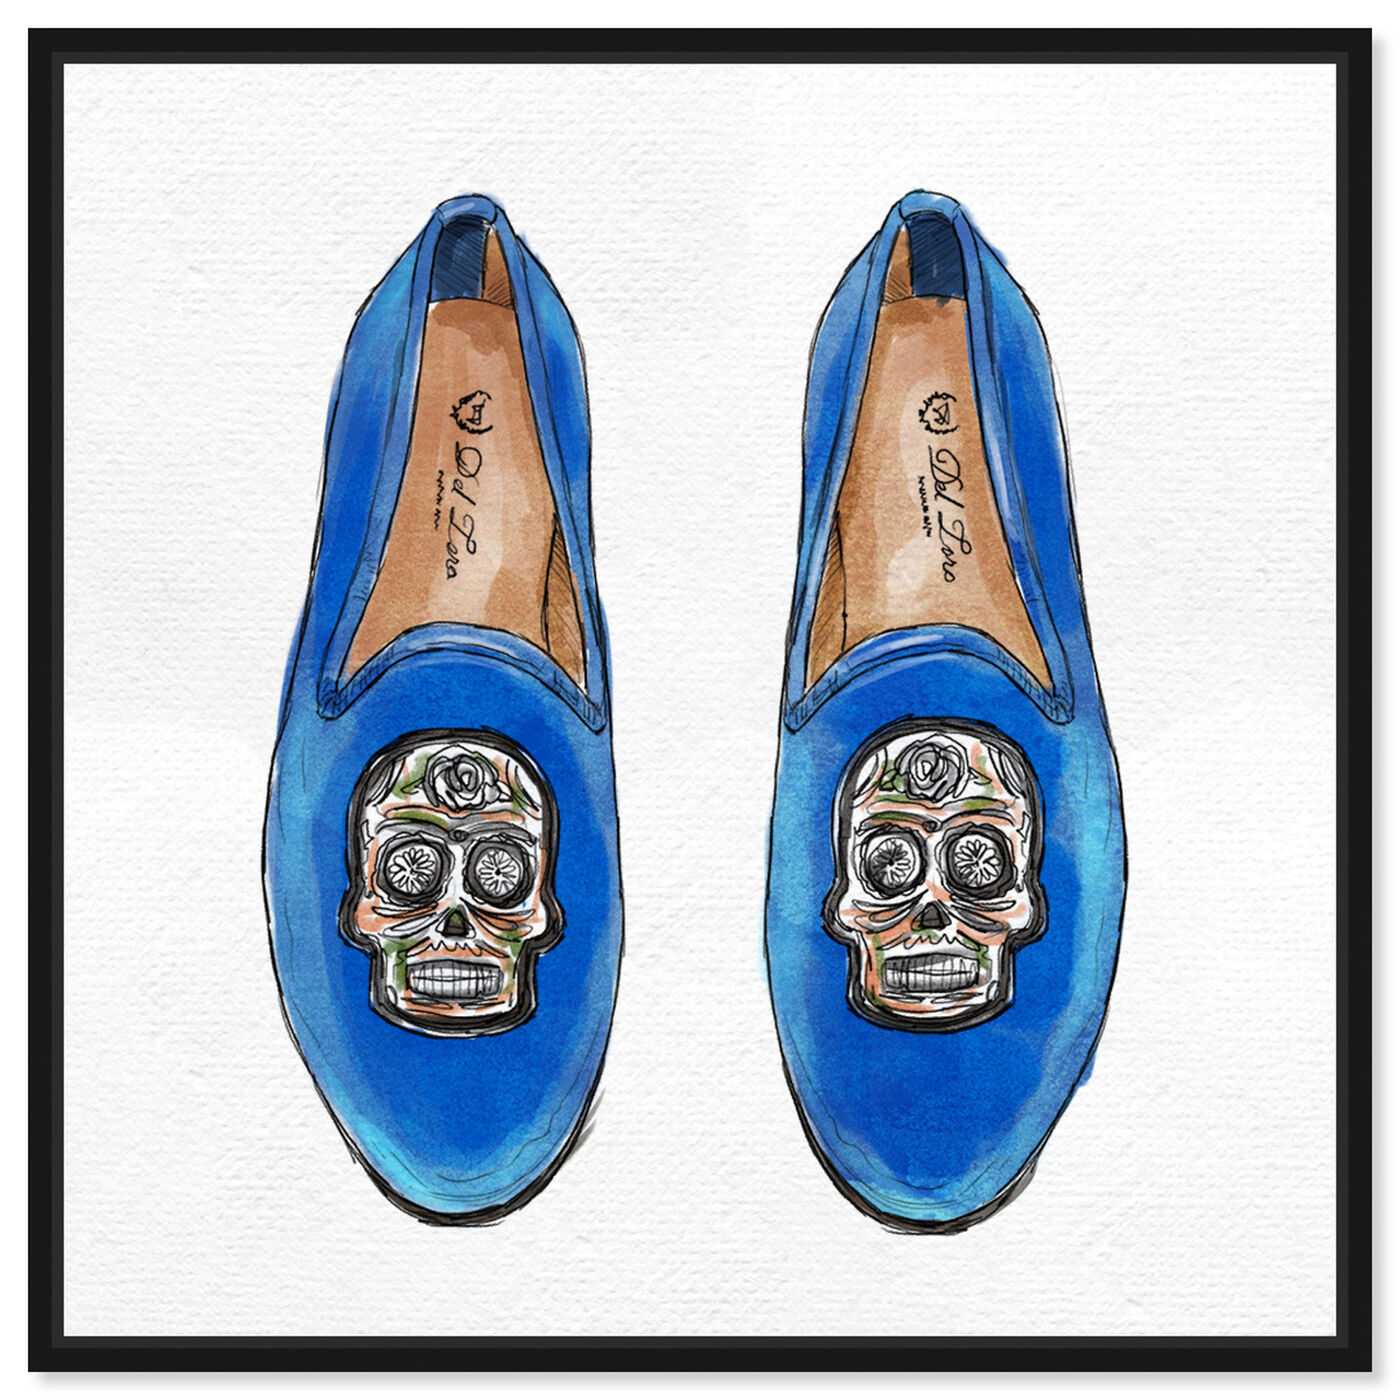 Front view of Skull Slippers featuring fashion and glam and shoes art.